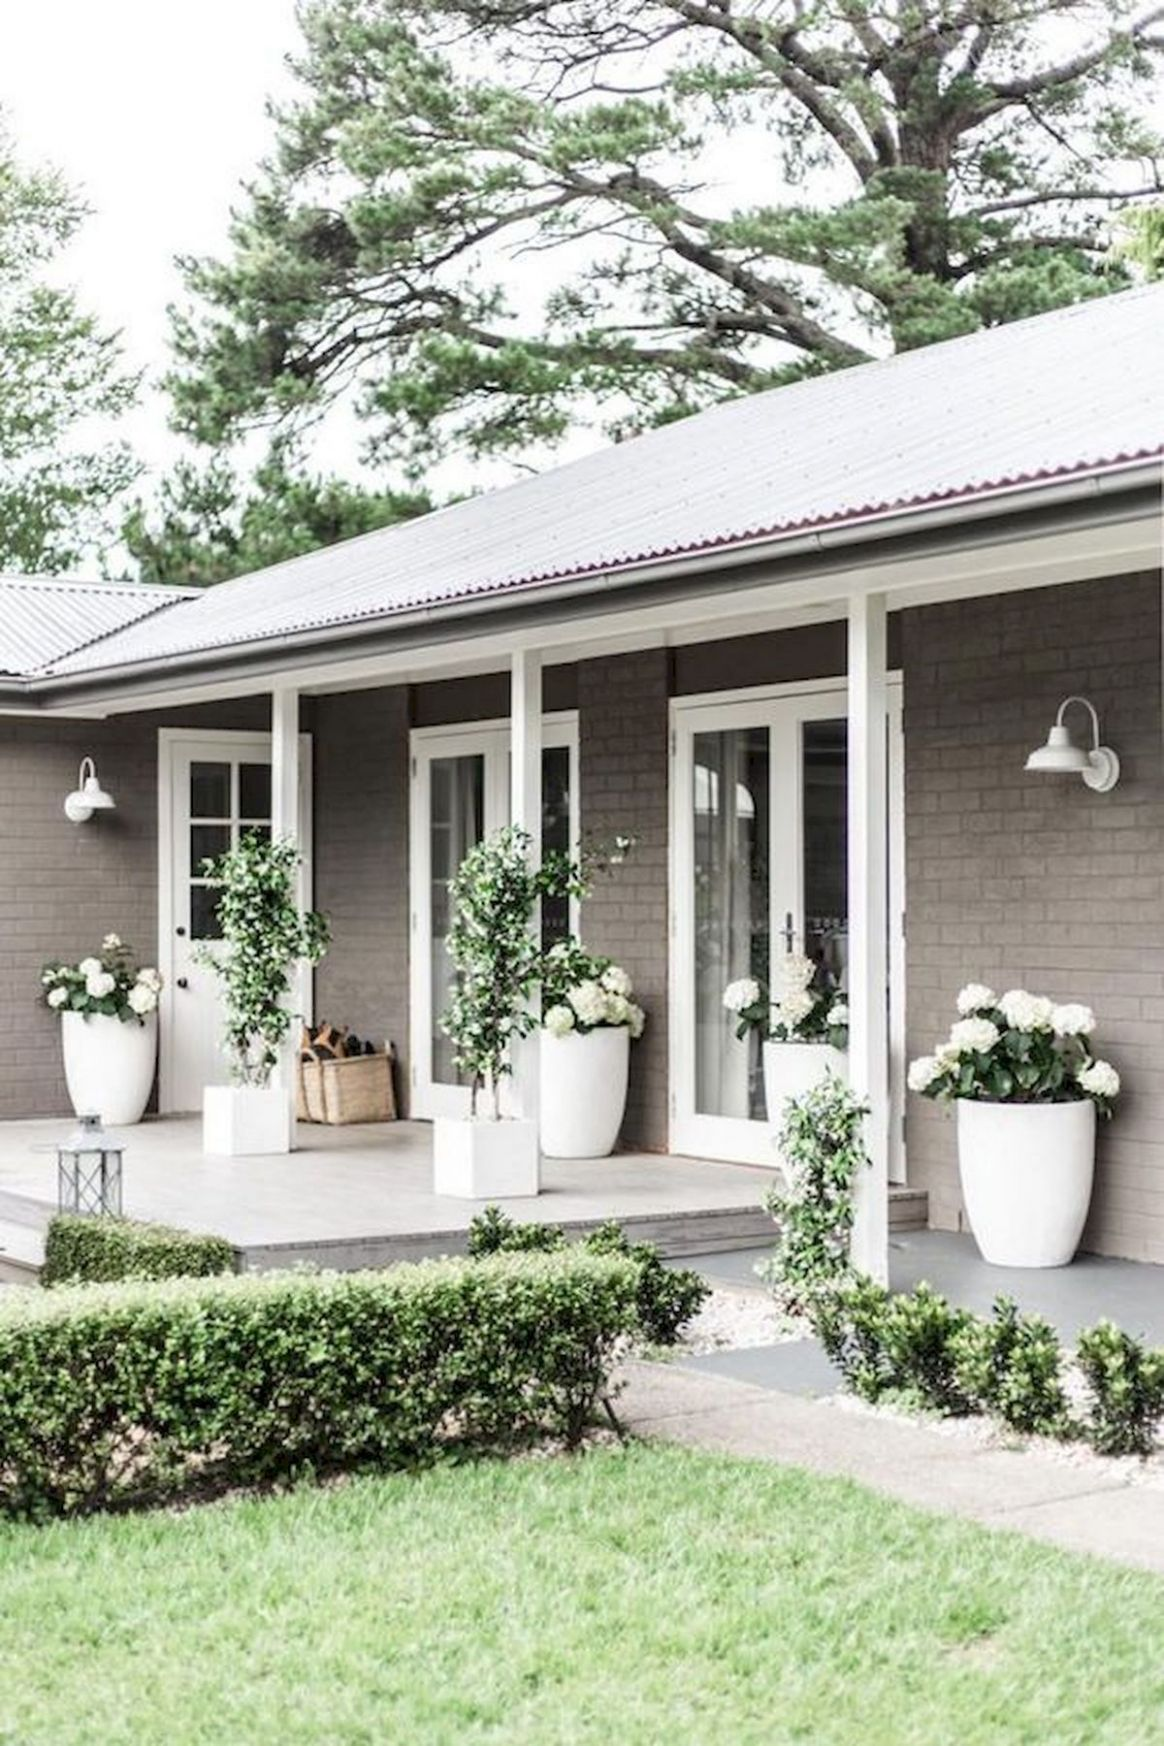 10 Wonderful Farmhouse Front Porch Ideas For More Homely ..